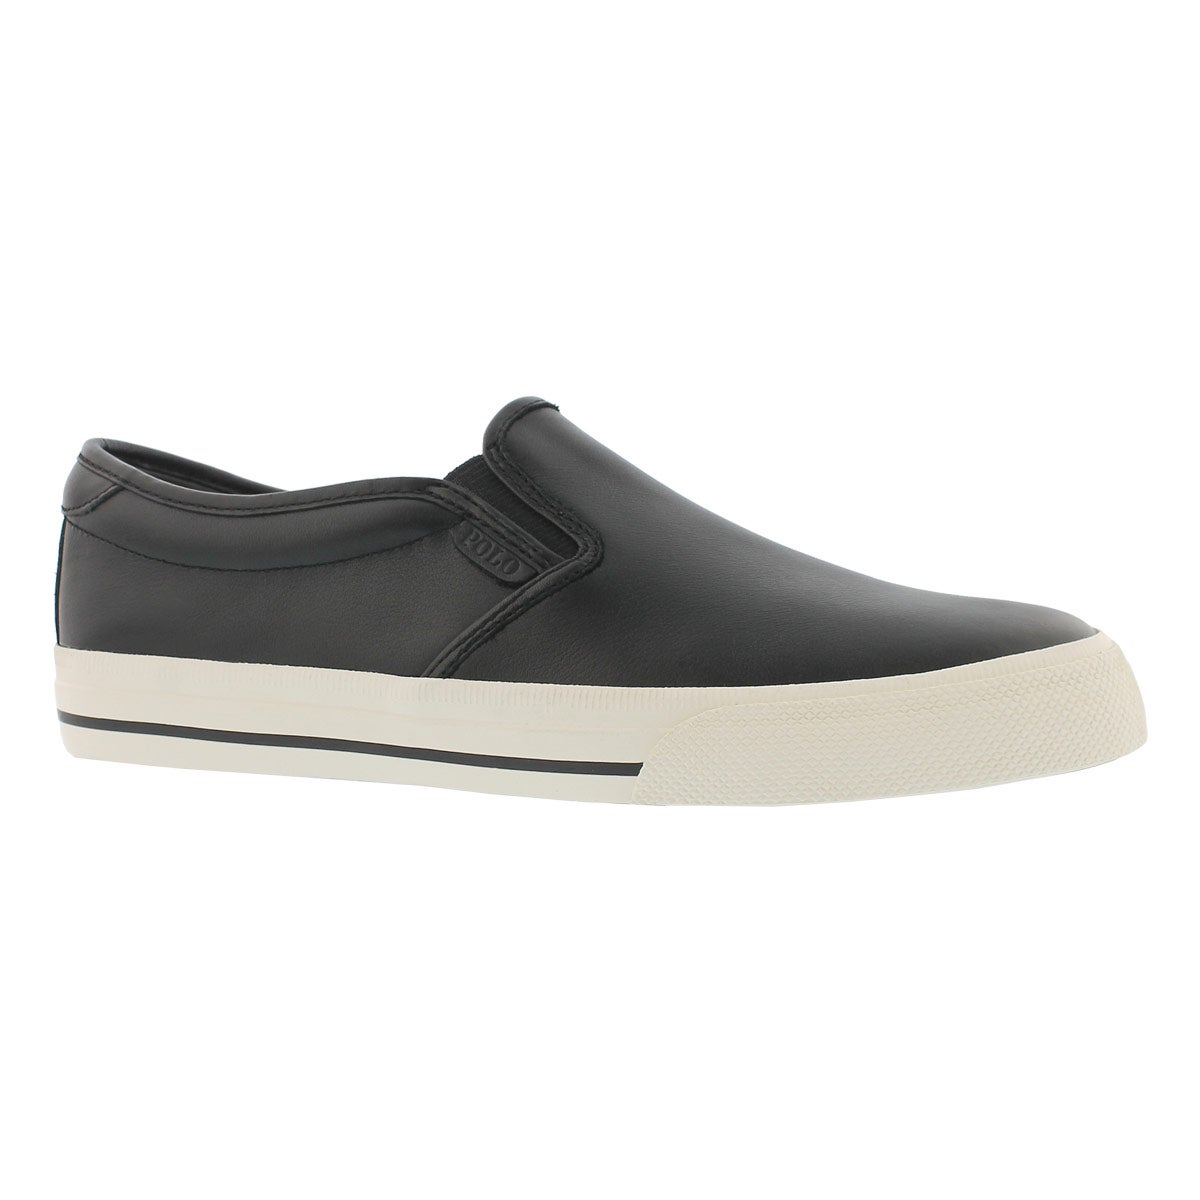 Mns Vaughn Slip On II black casual shoe